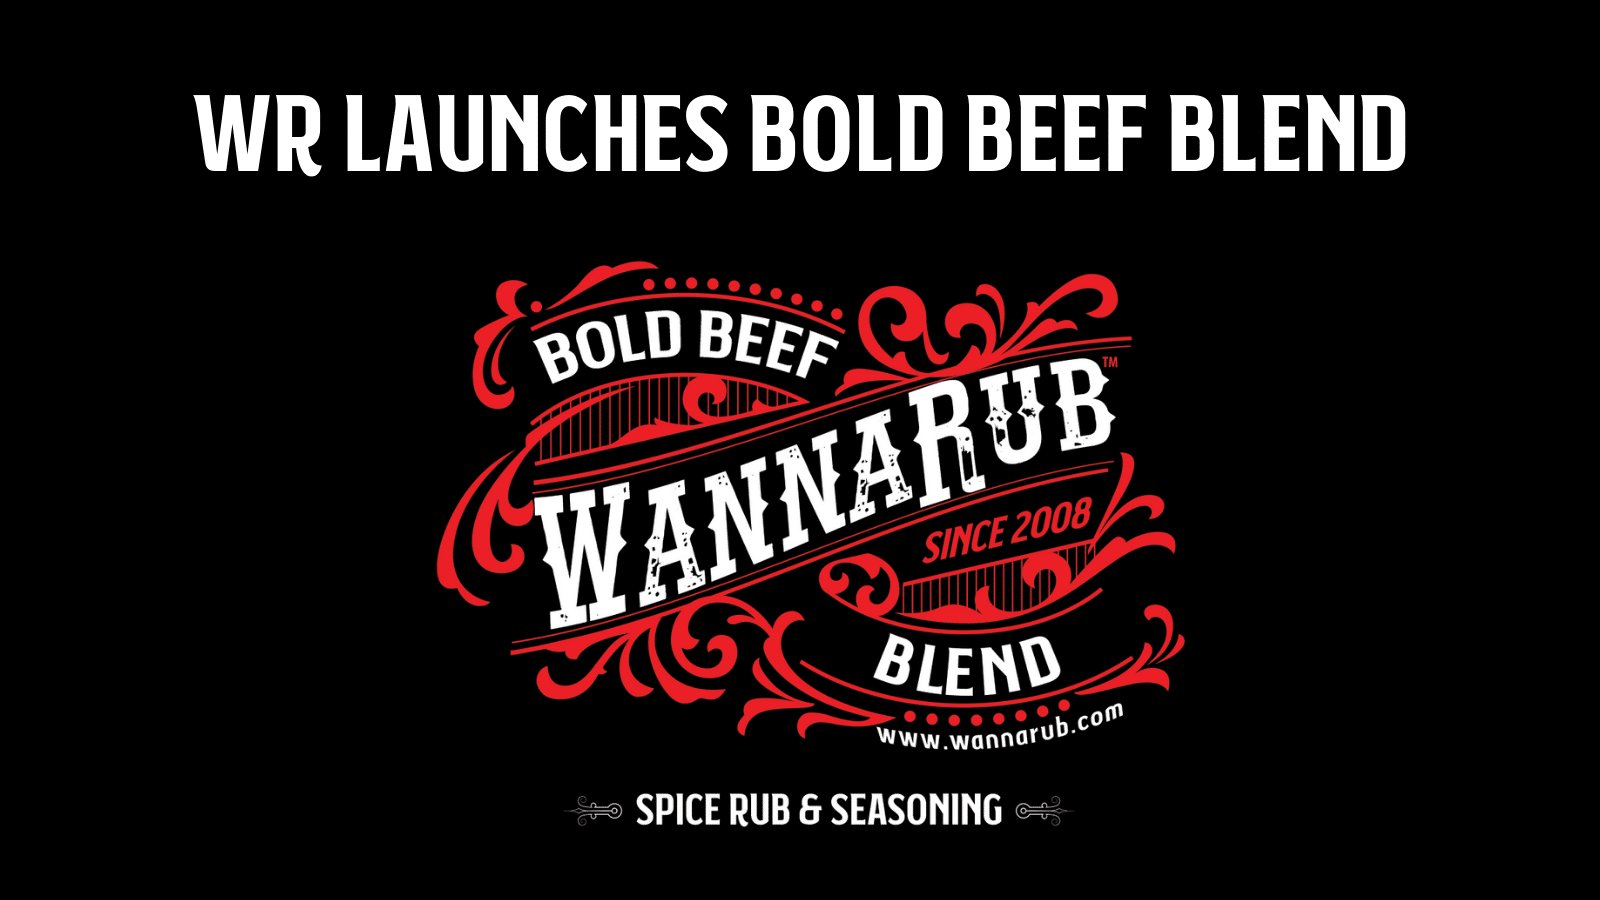 WannaRub Eclipses 25,000 Bottles Sold, Launches Bold Beef Blend